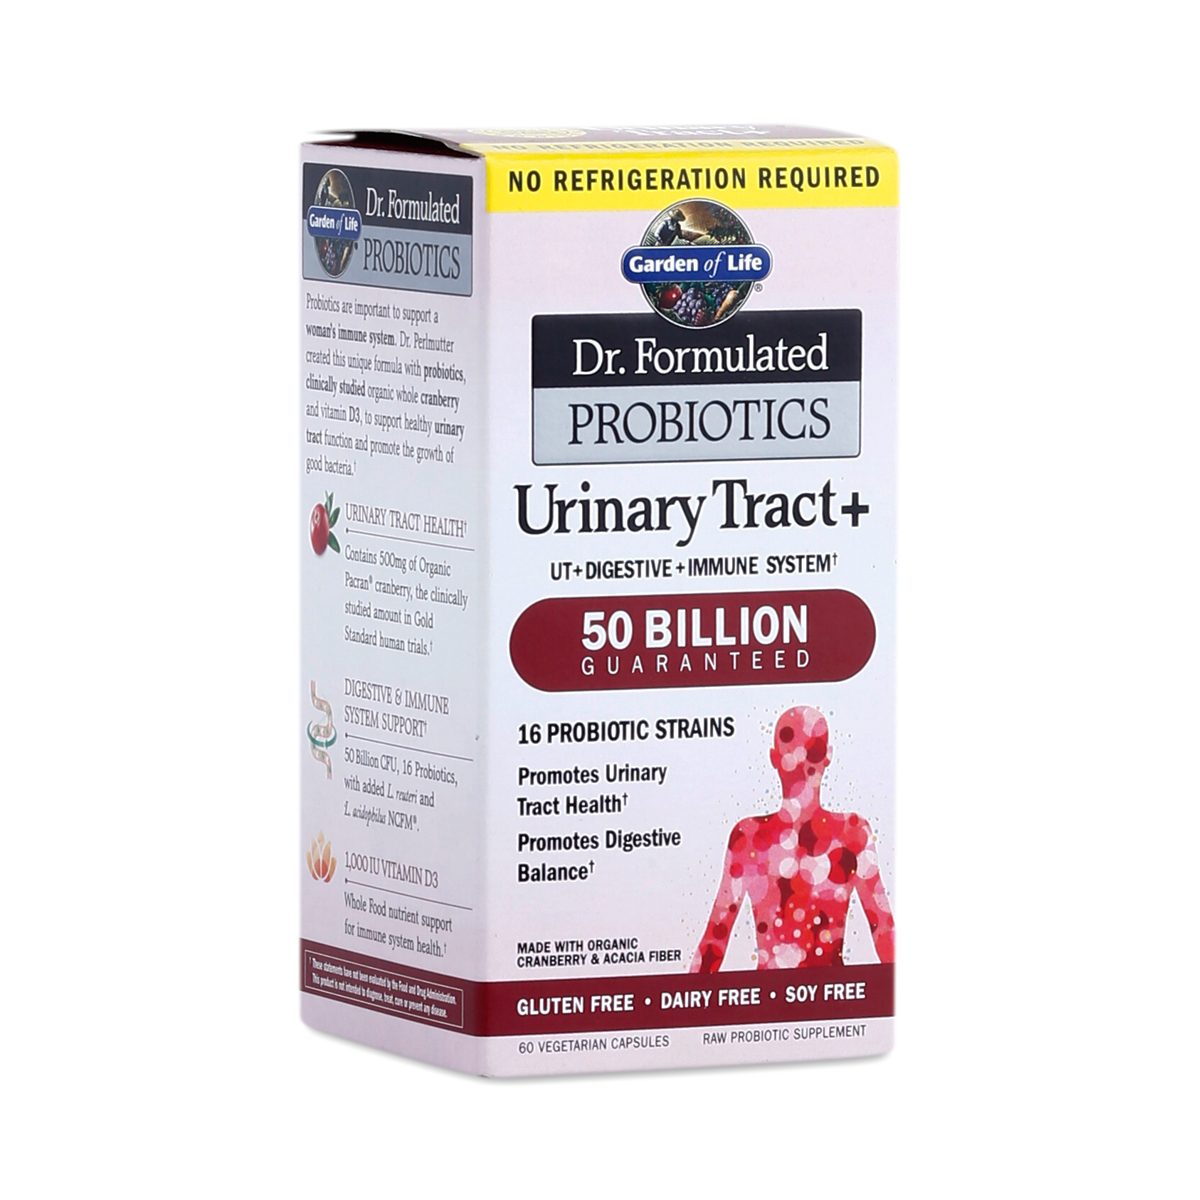 urinary tract probiotics by garden of life thrive market